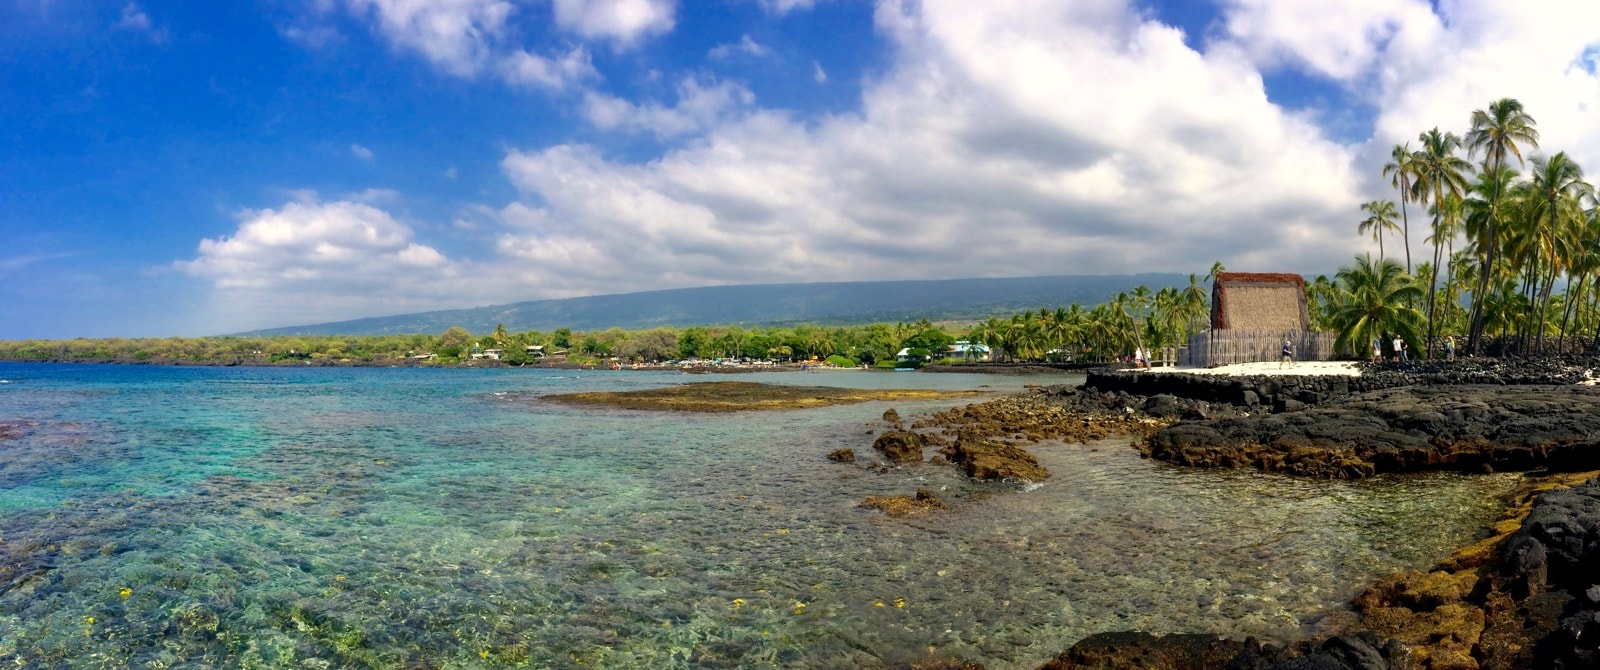 Big Island (Hawaii) Travel Guide